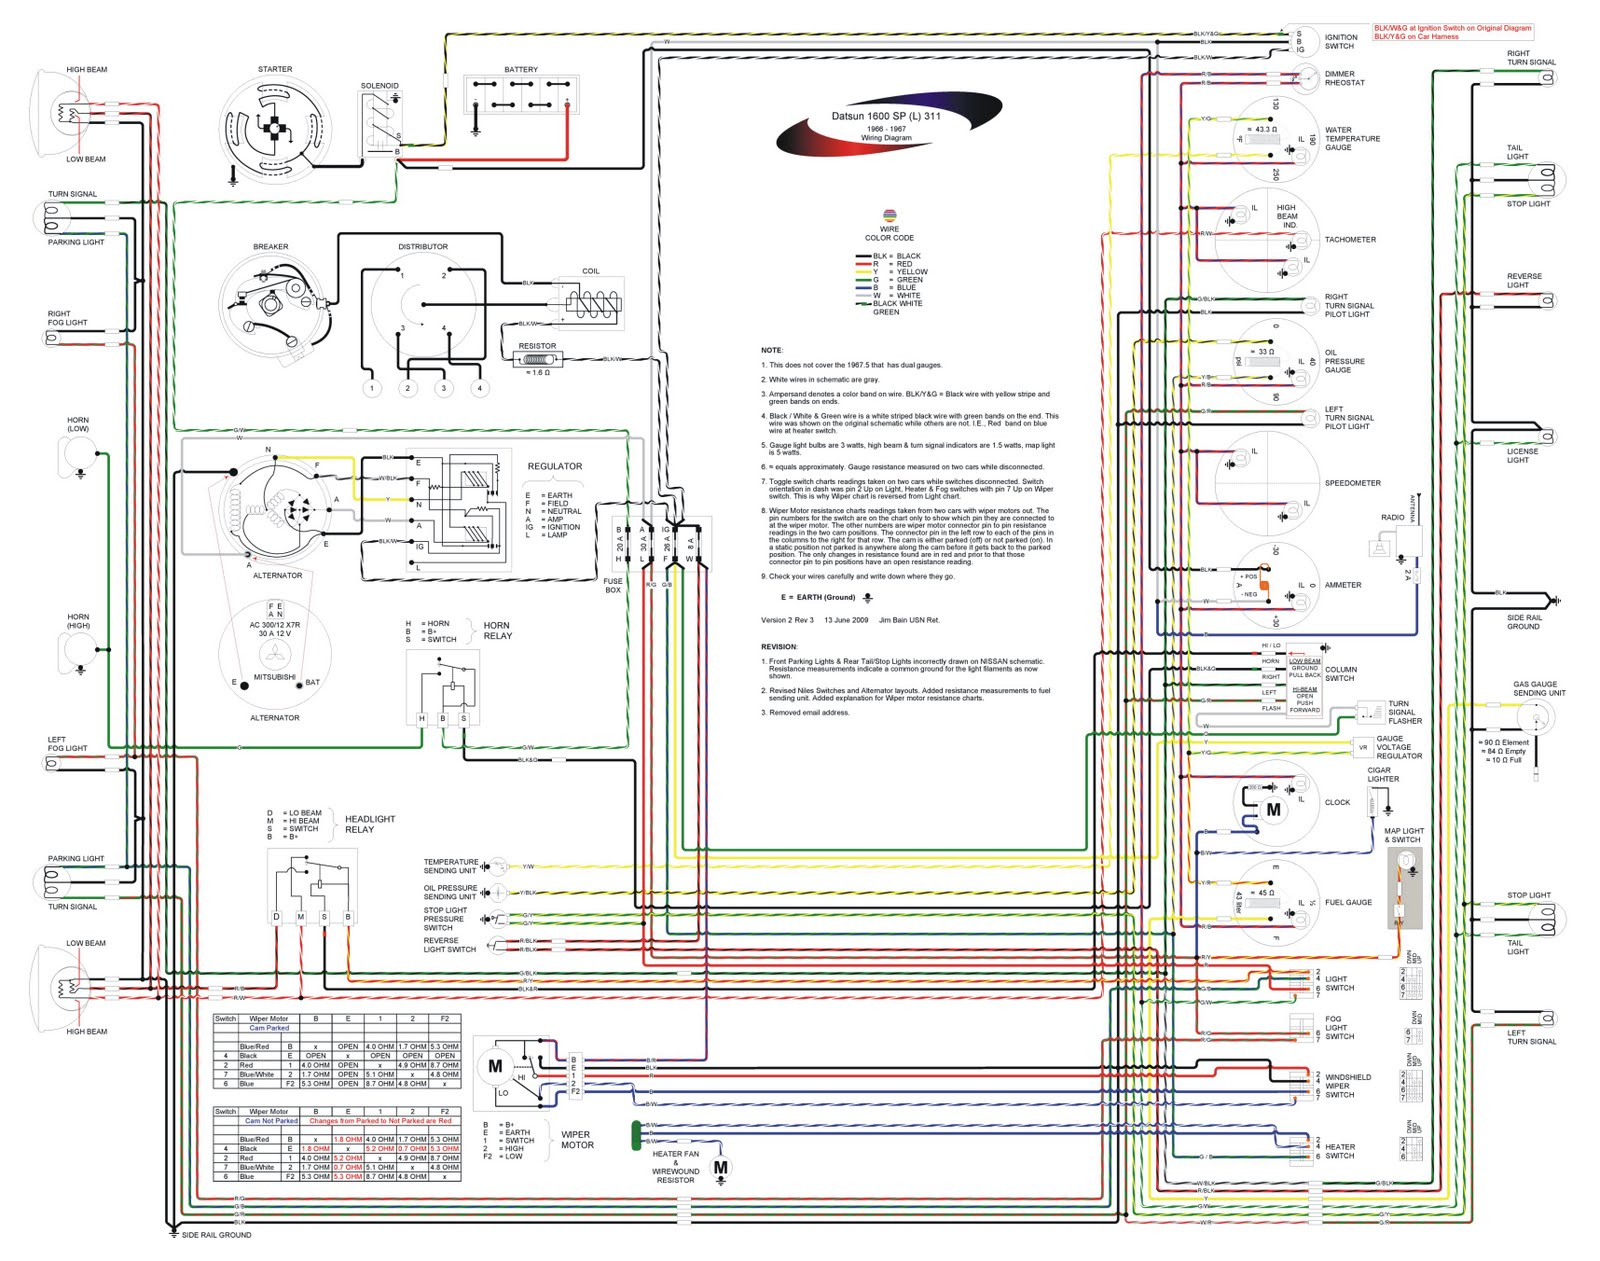 gem electrical wiring diagram | complete car engine scheme and wiring